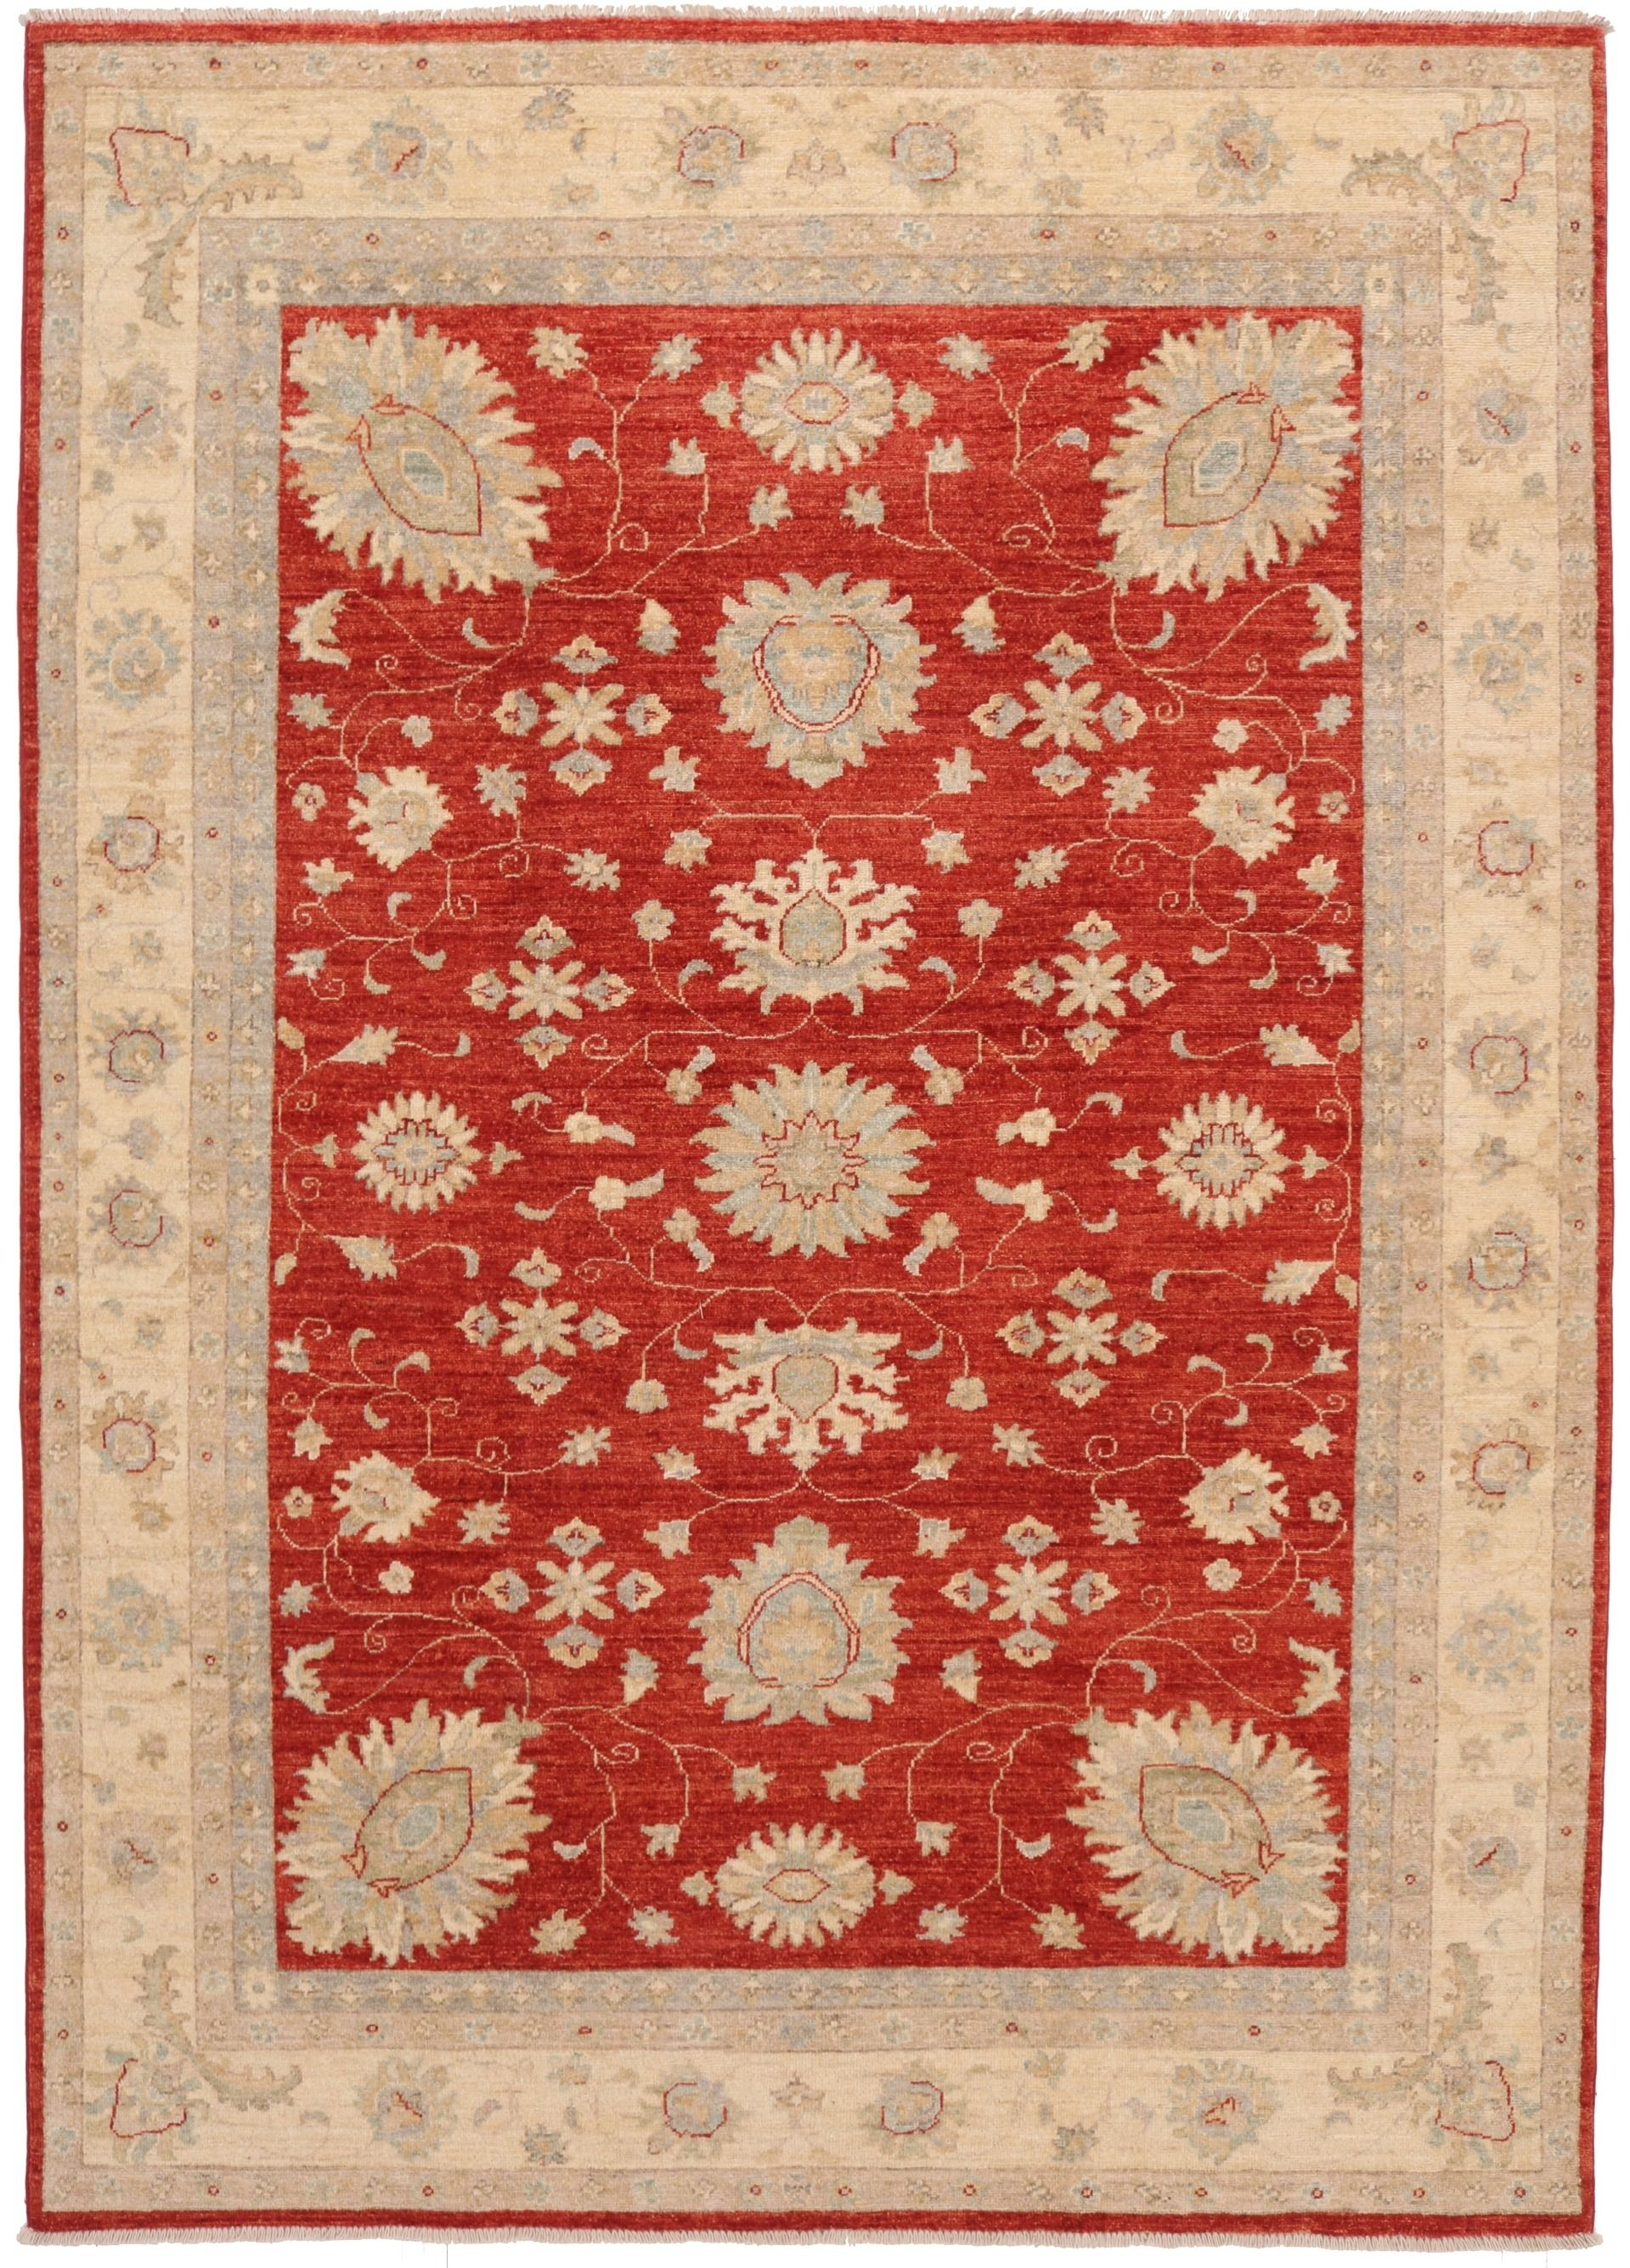 Garous / Ziegler design Rug in Red 8 x 5'6